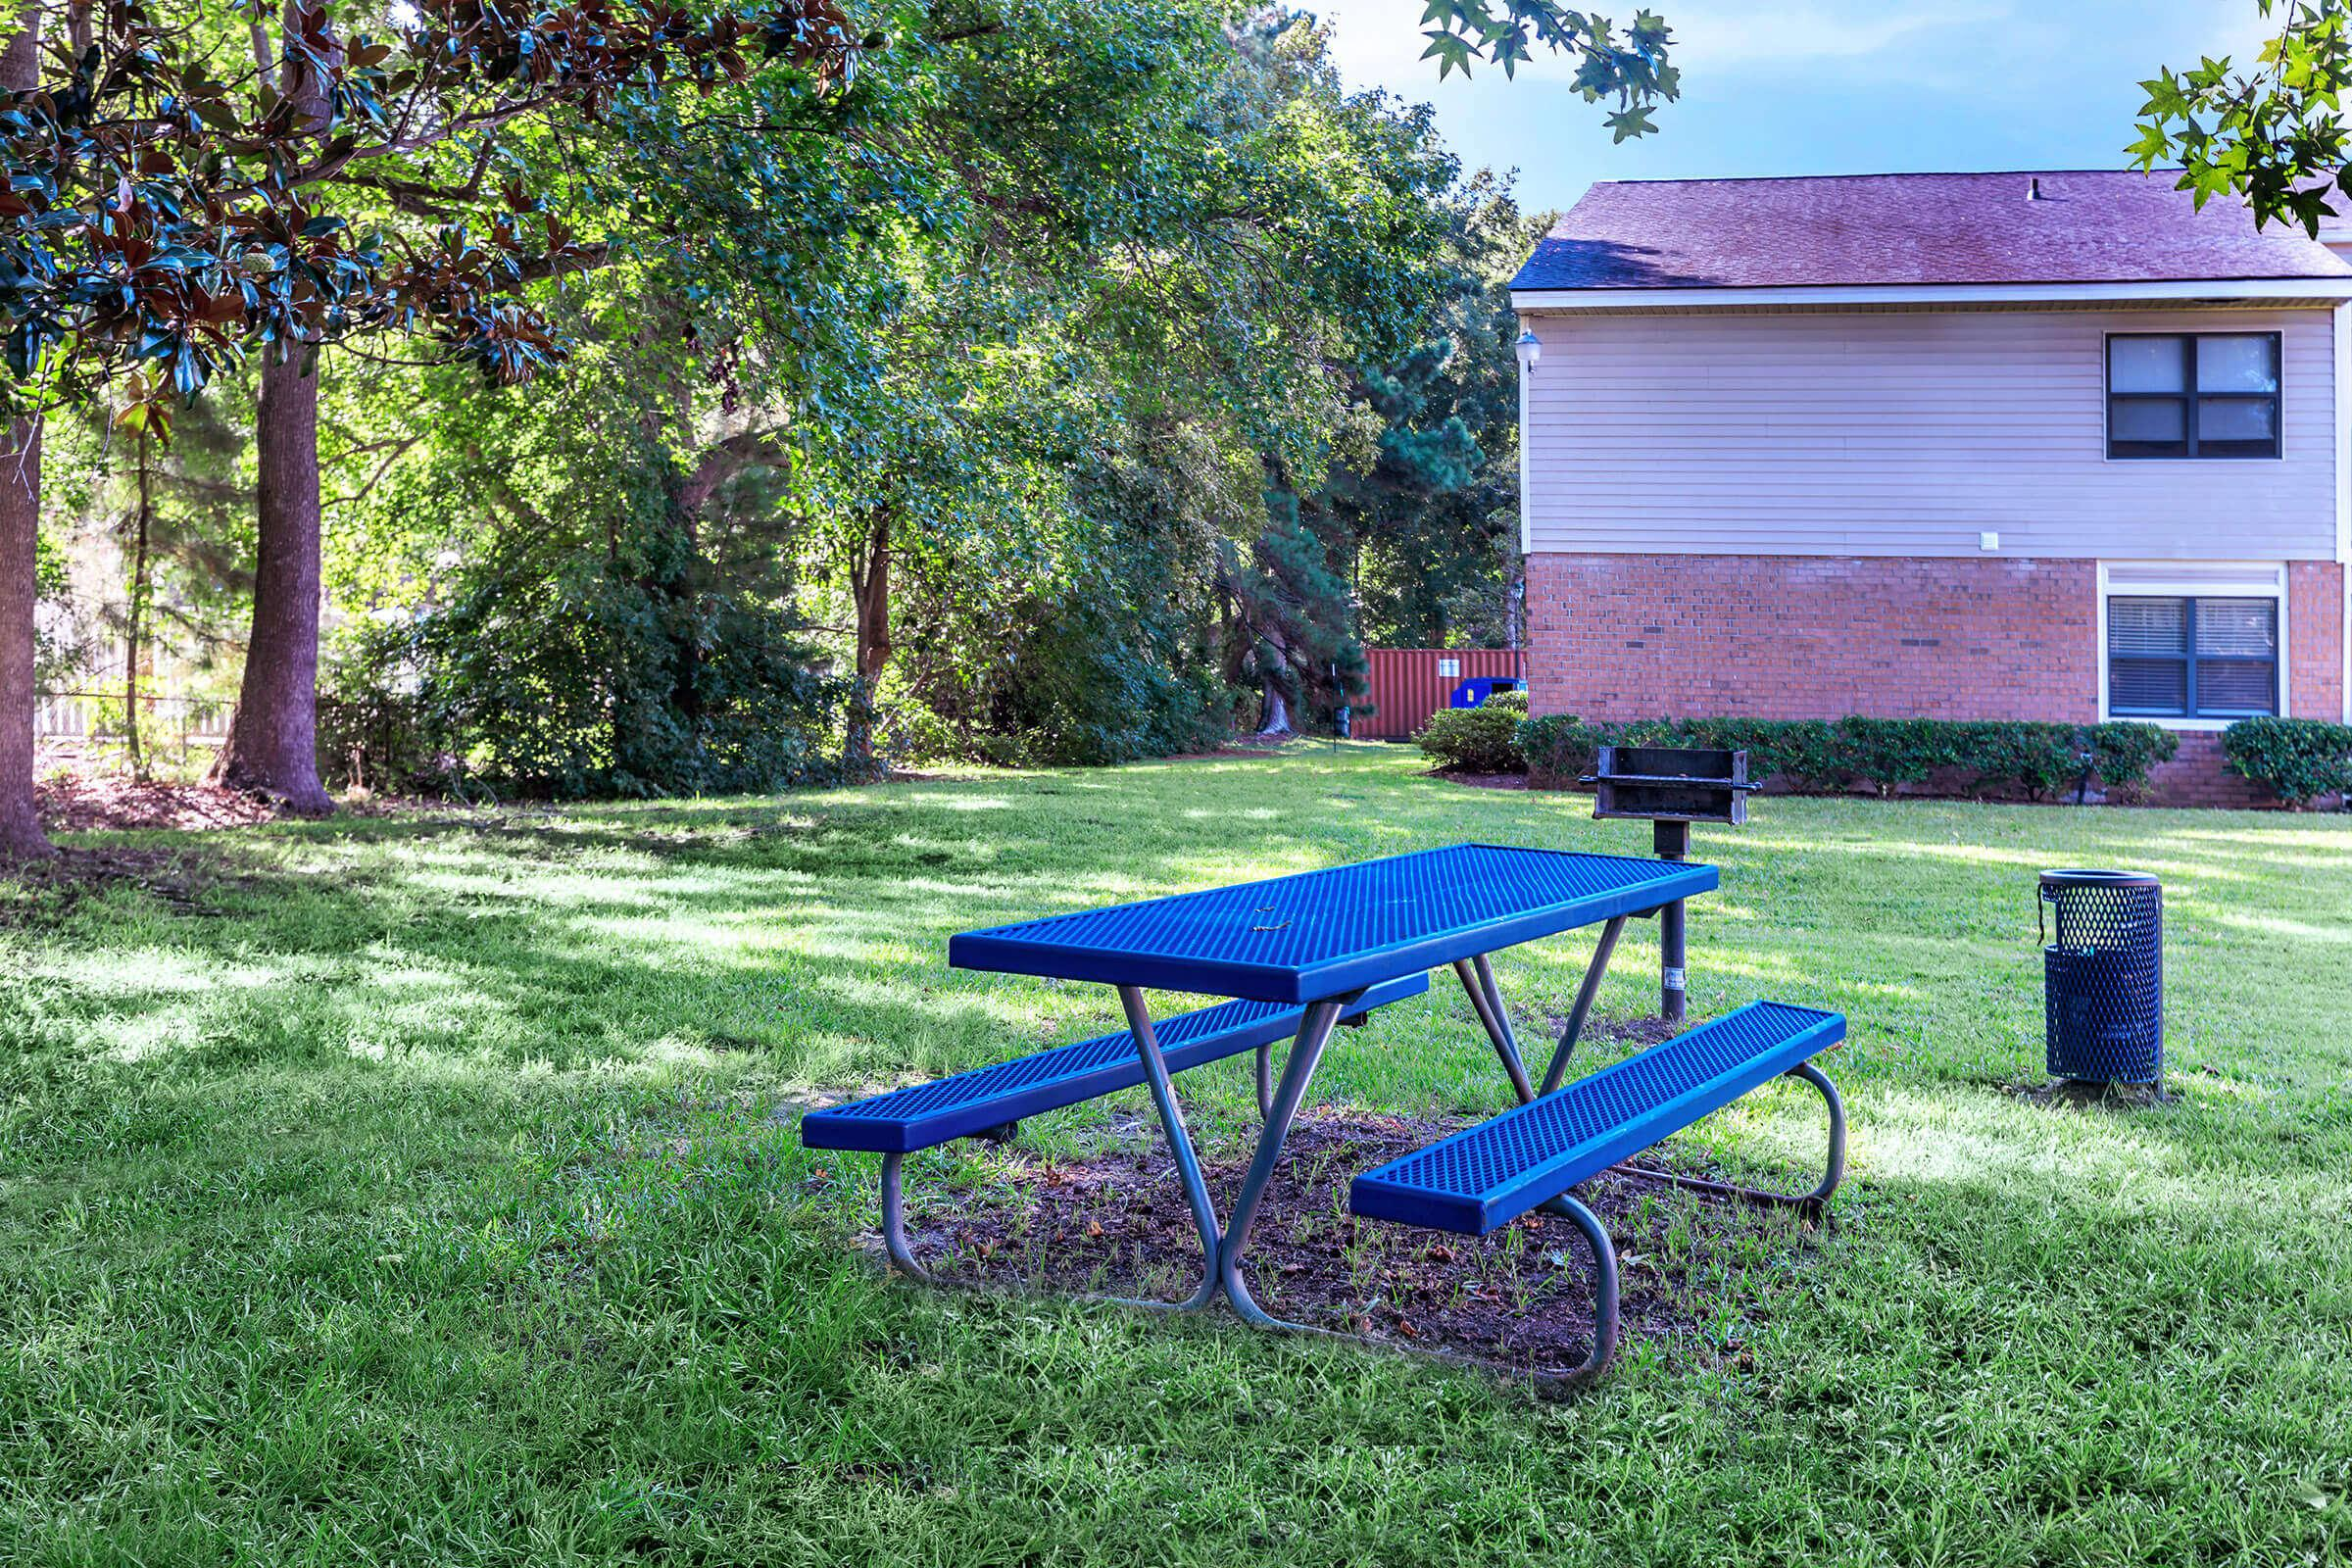 an empty park bench sitting in front of a picnic table